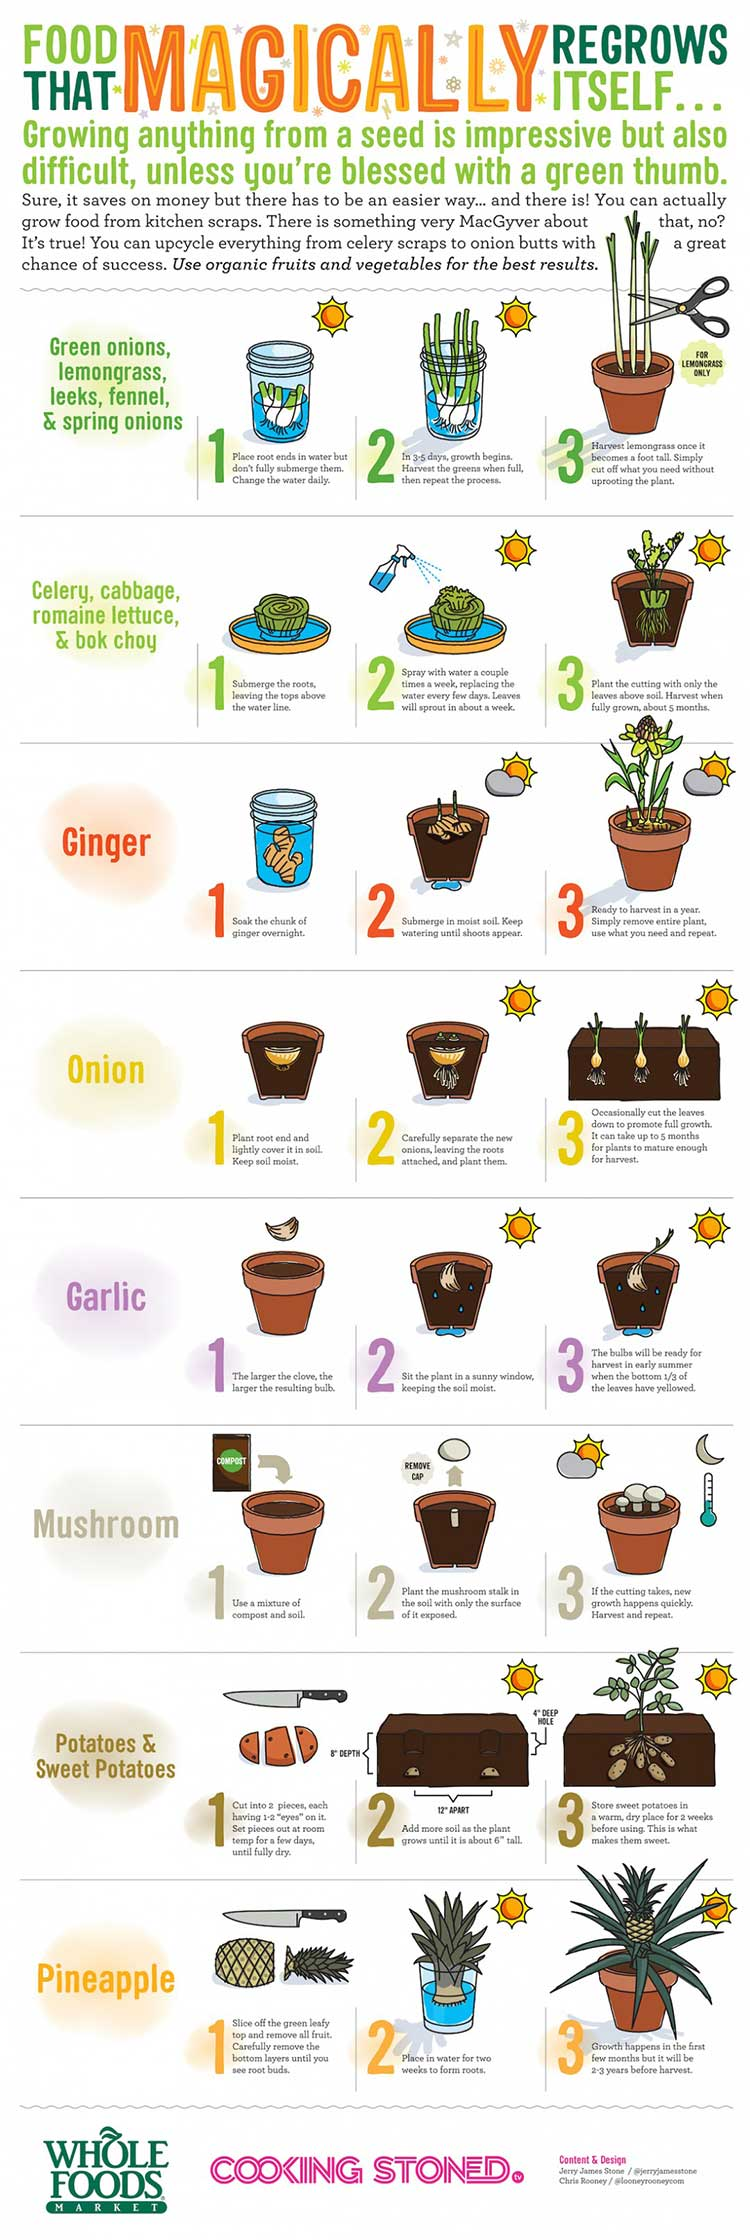 Regrow food from kitchen scraps